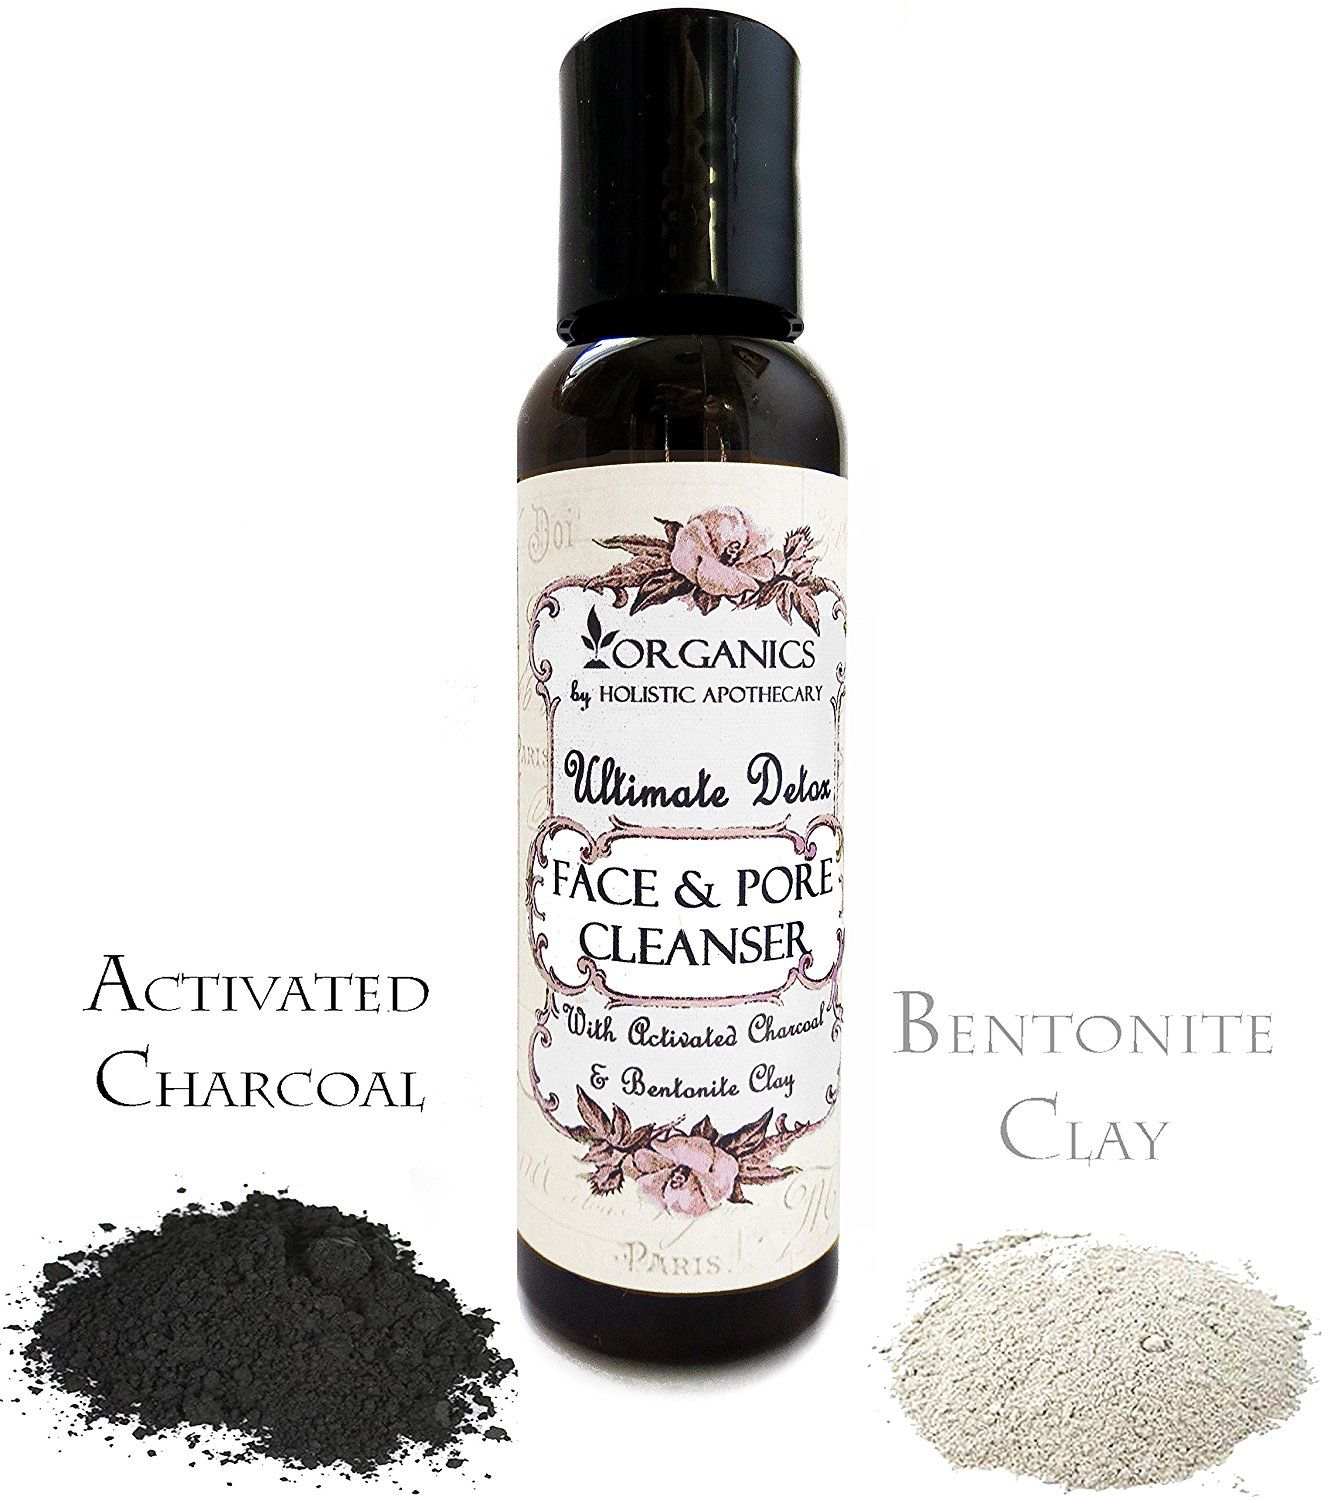 ultimate-detox-face-wash-activated-charcoal-and-bentonite-clay-facial-cleanser-with-organic-tea-tree-oregano-lemongrass-sandalwood-for-a-clear-and-refined-complextion